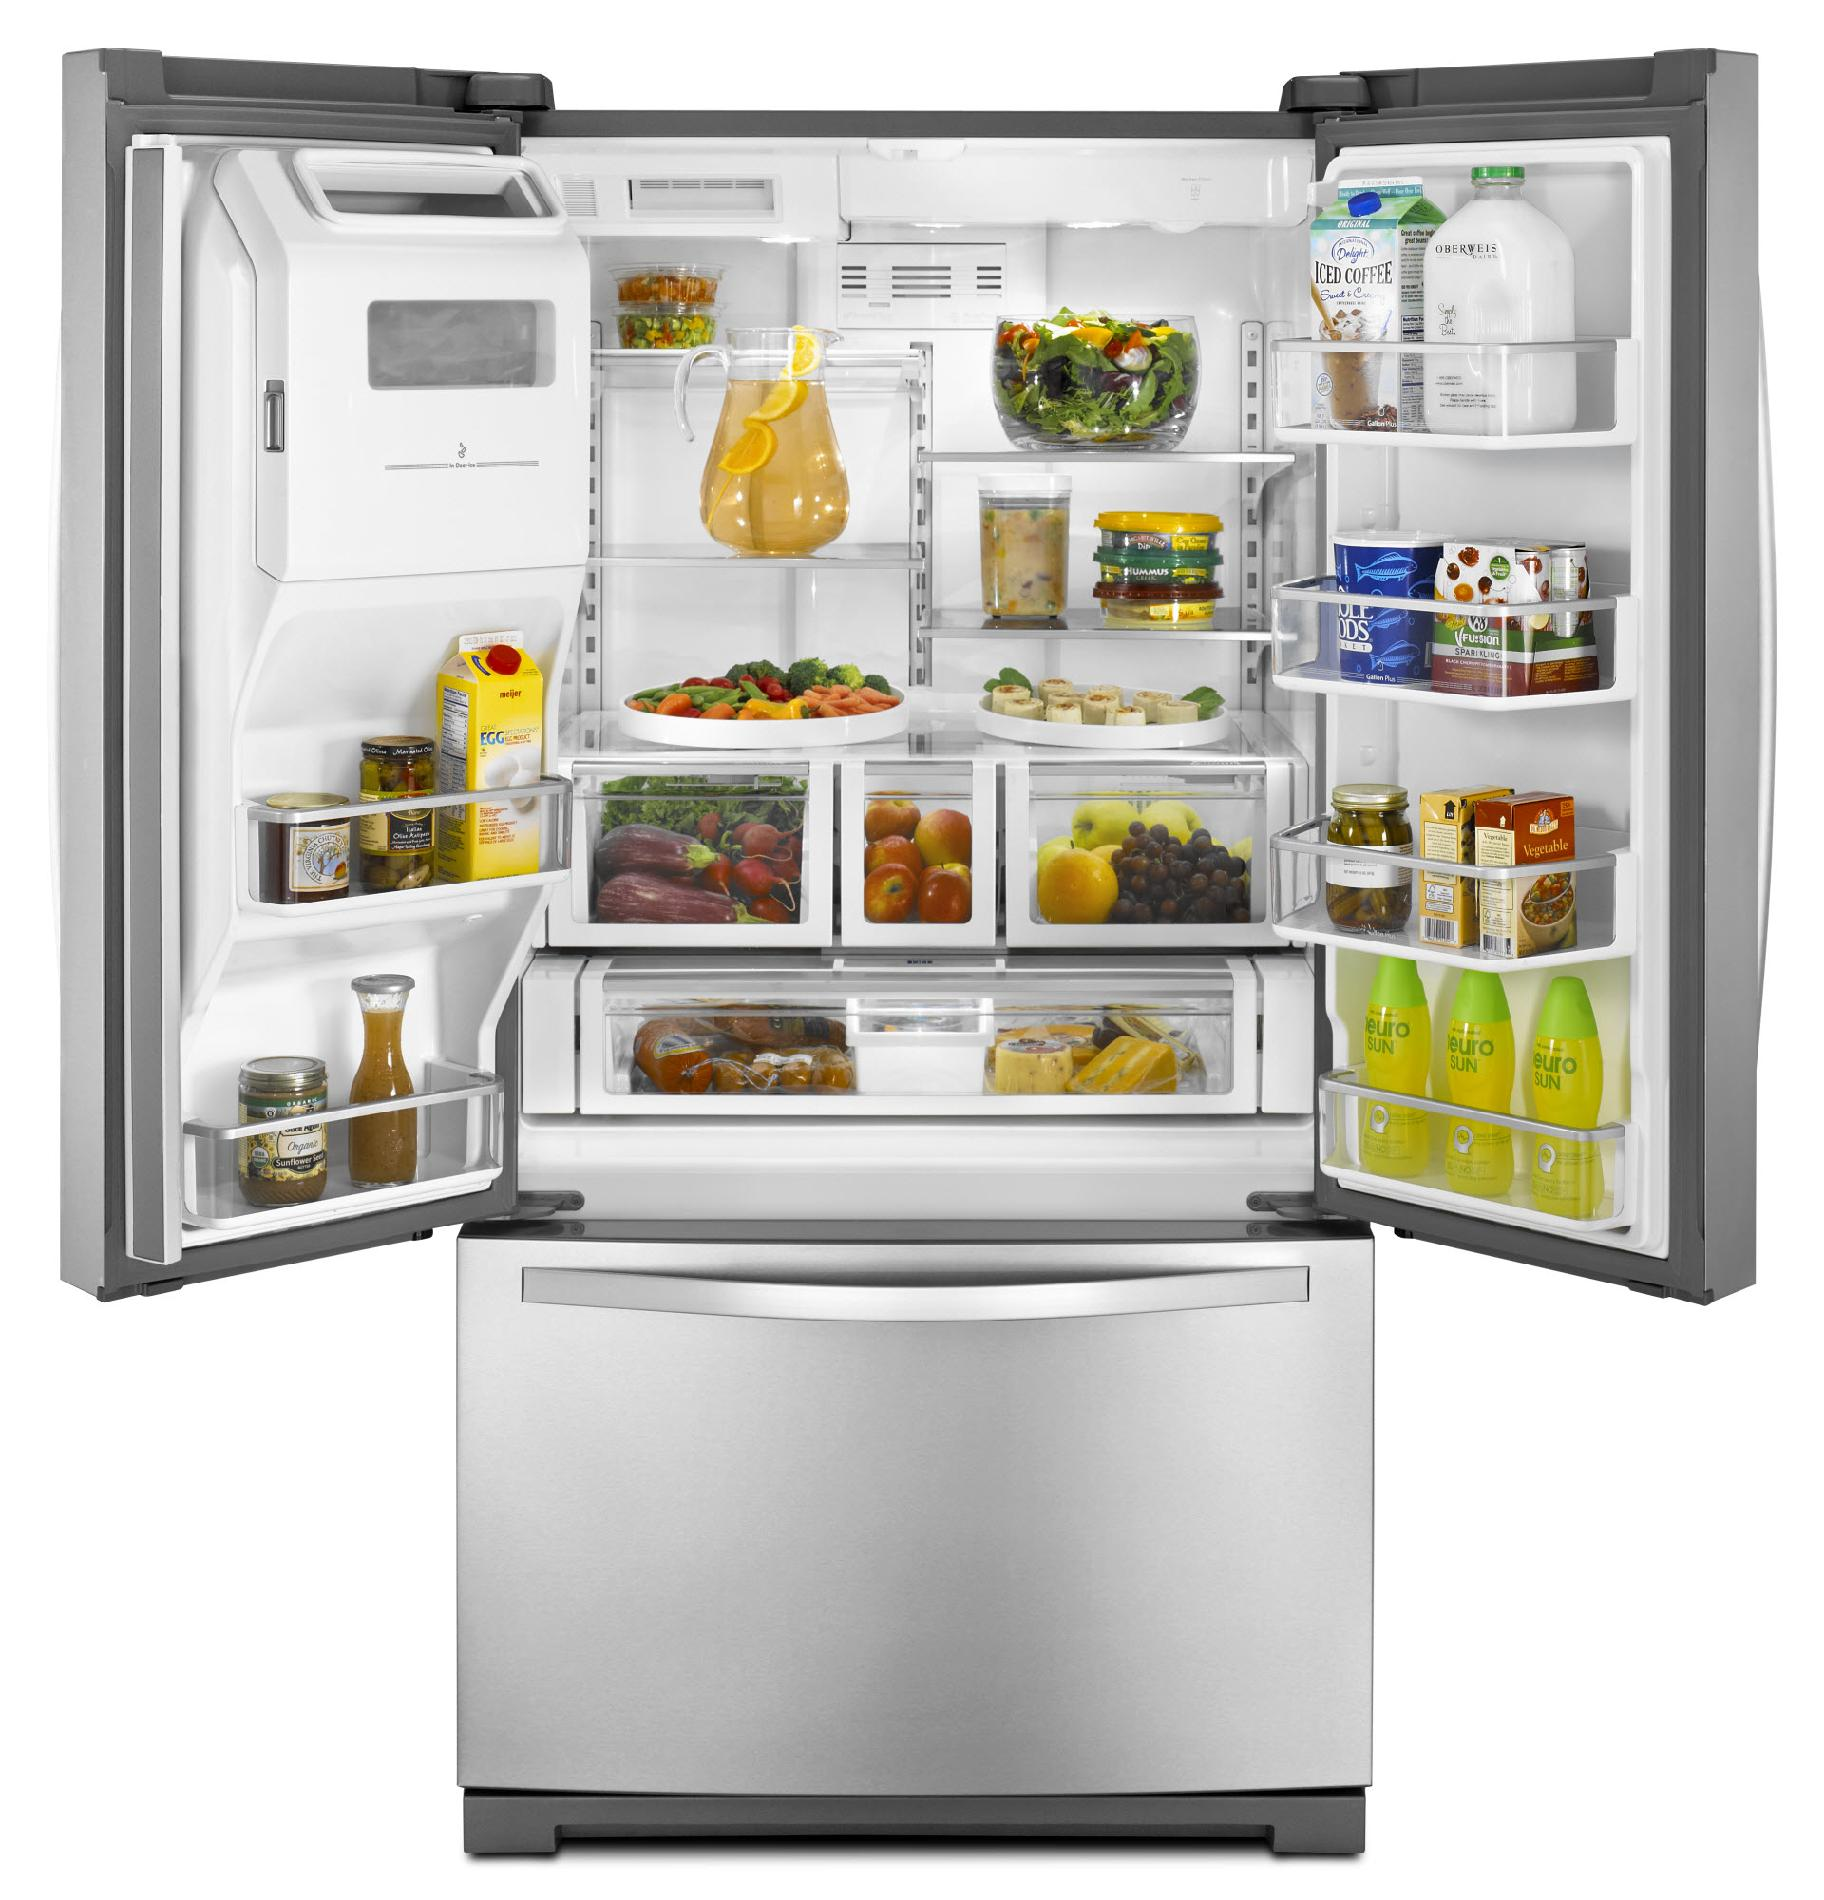 Whirlpool WRF989SDAM 27 cu. ft. French Door Refrigerator  - Stainless Steel